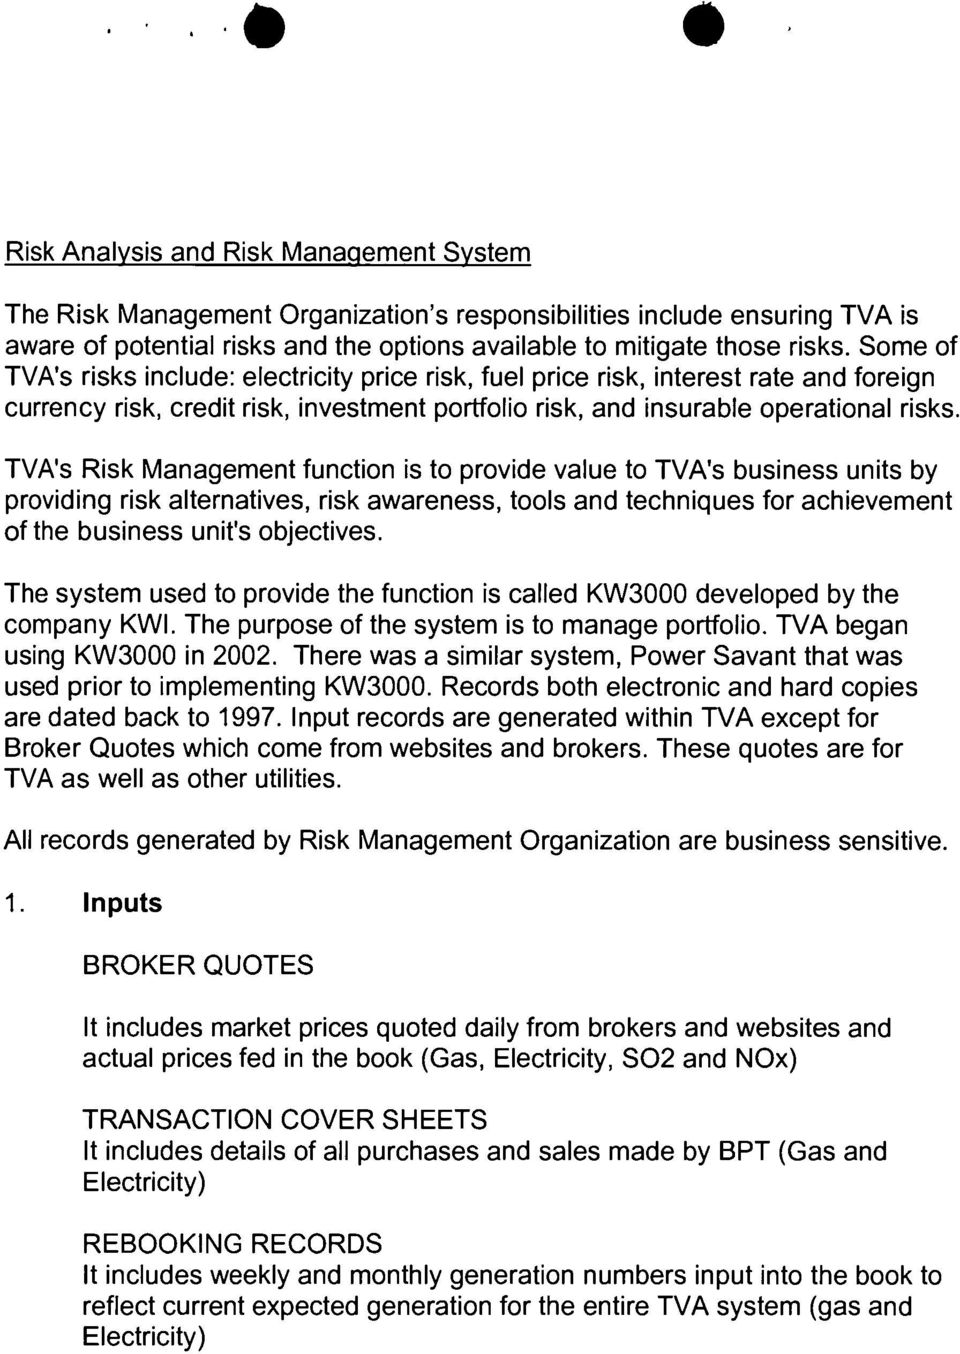 TVA's Risk Management function is to provide value to TVA's business units by providing risk alternatives, risk awareness, tools and techniques for achievement of the business unit's objectives.